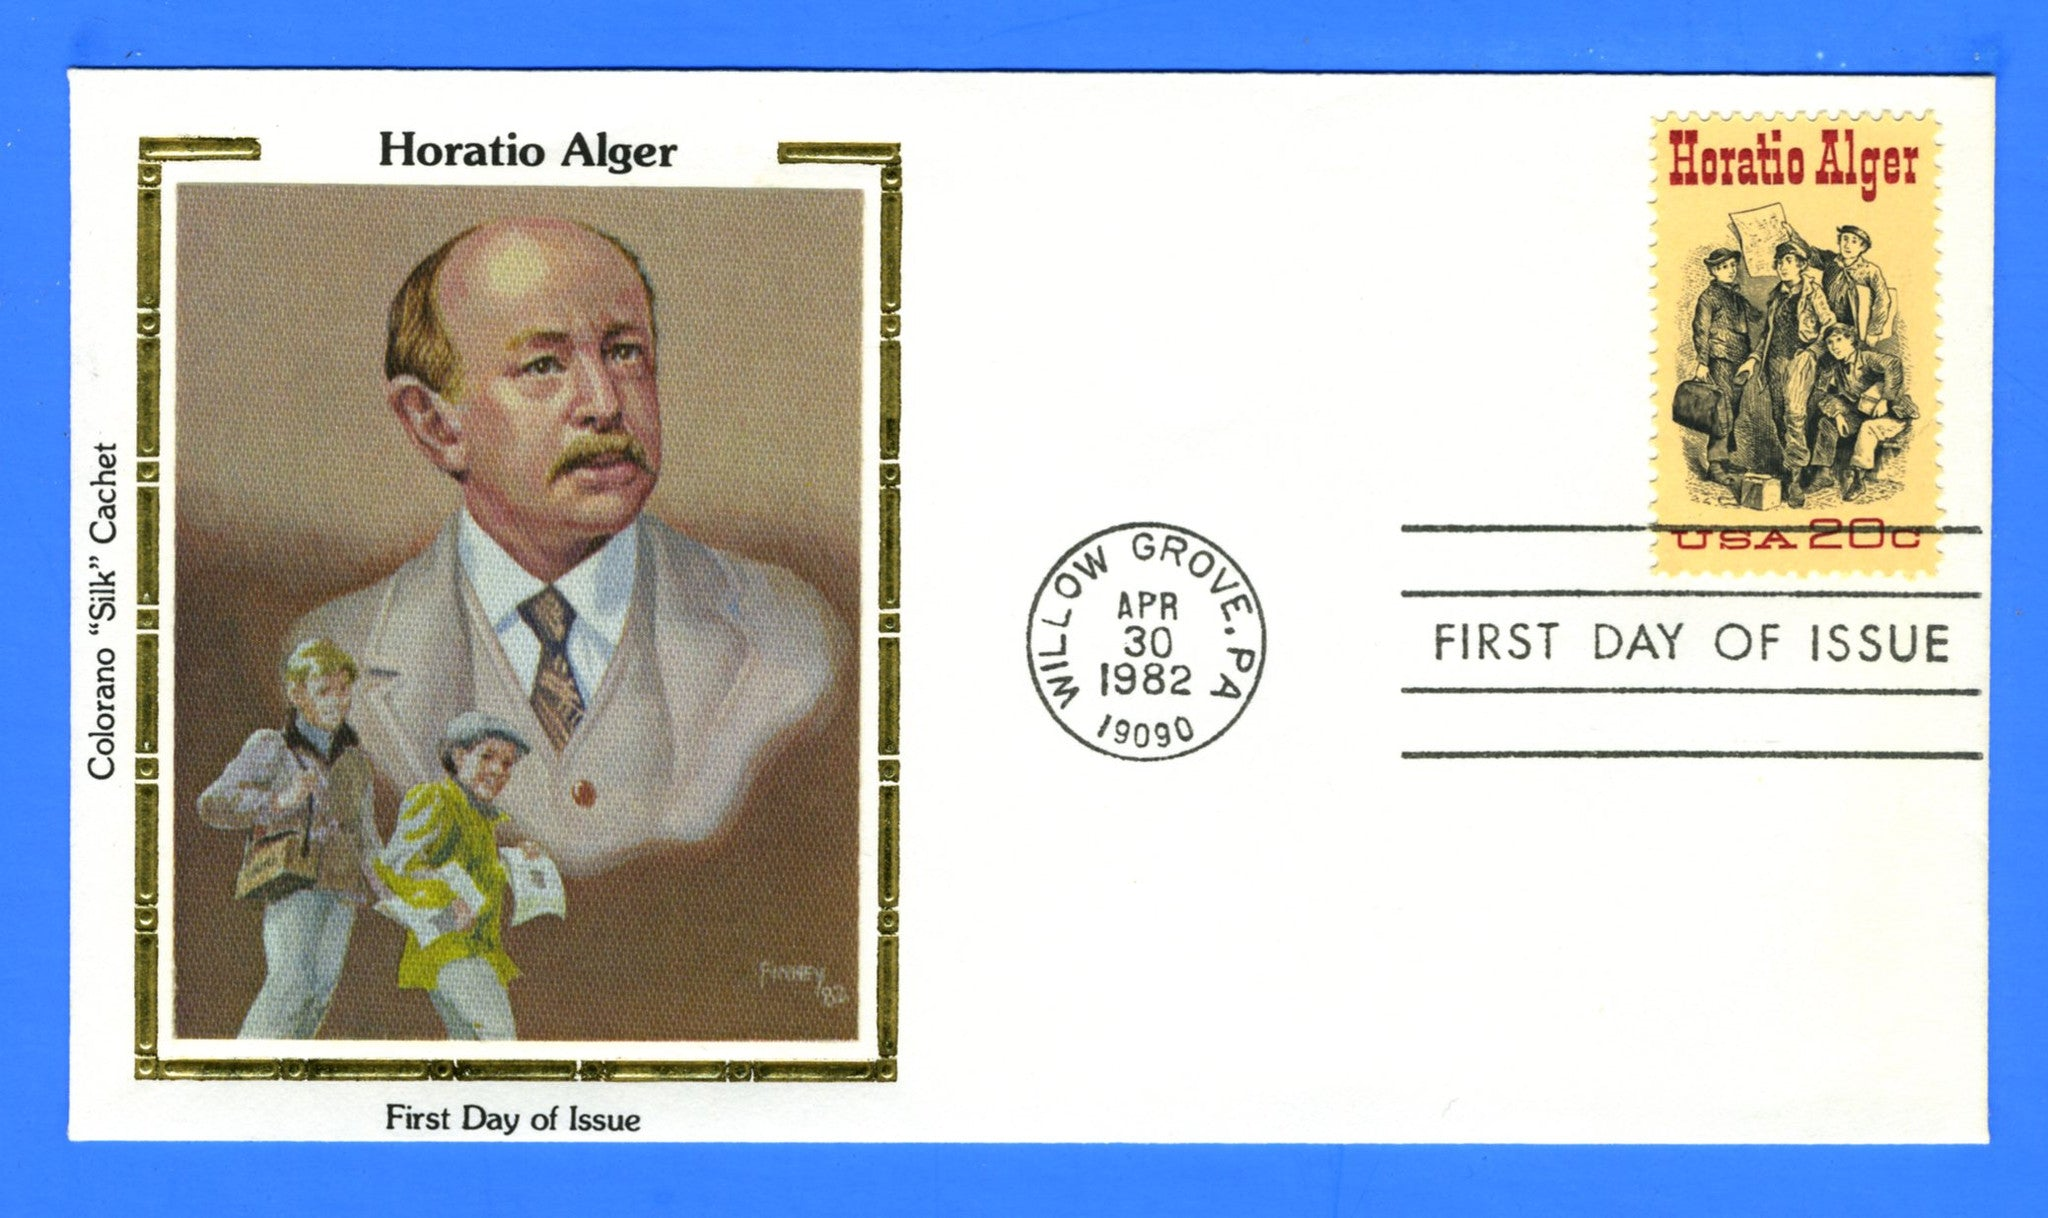 Scott 2010 20c Horatio Alger First Day Cover by Colorano